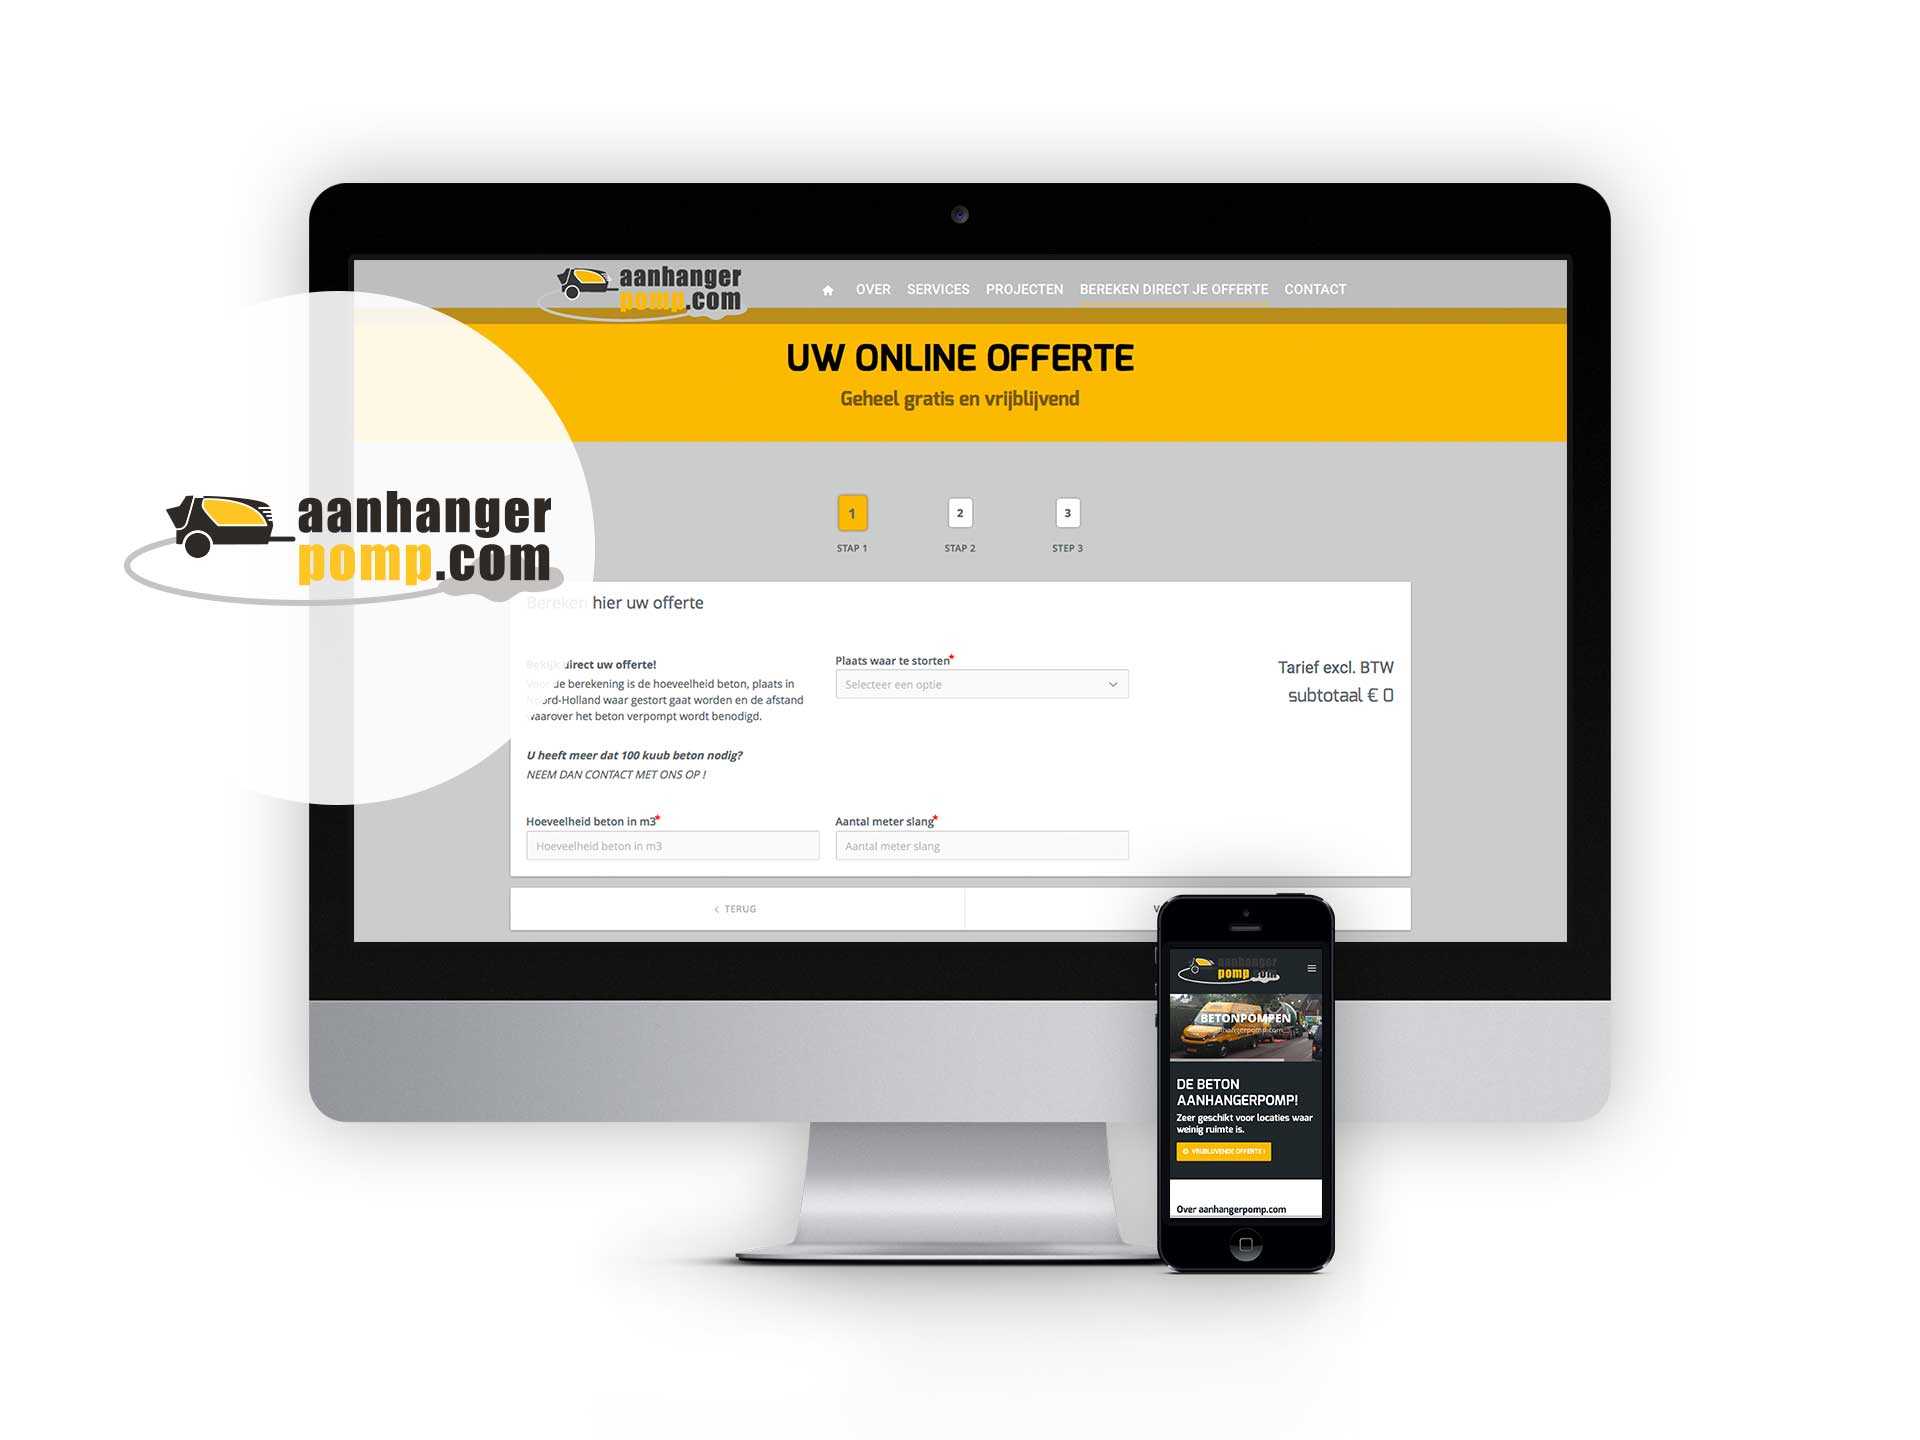 Aanhangerpomp.com, website